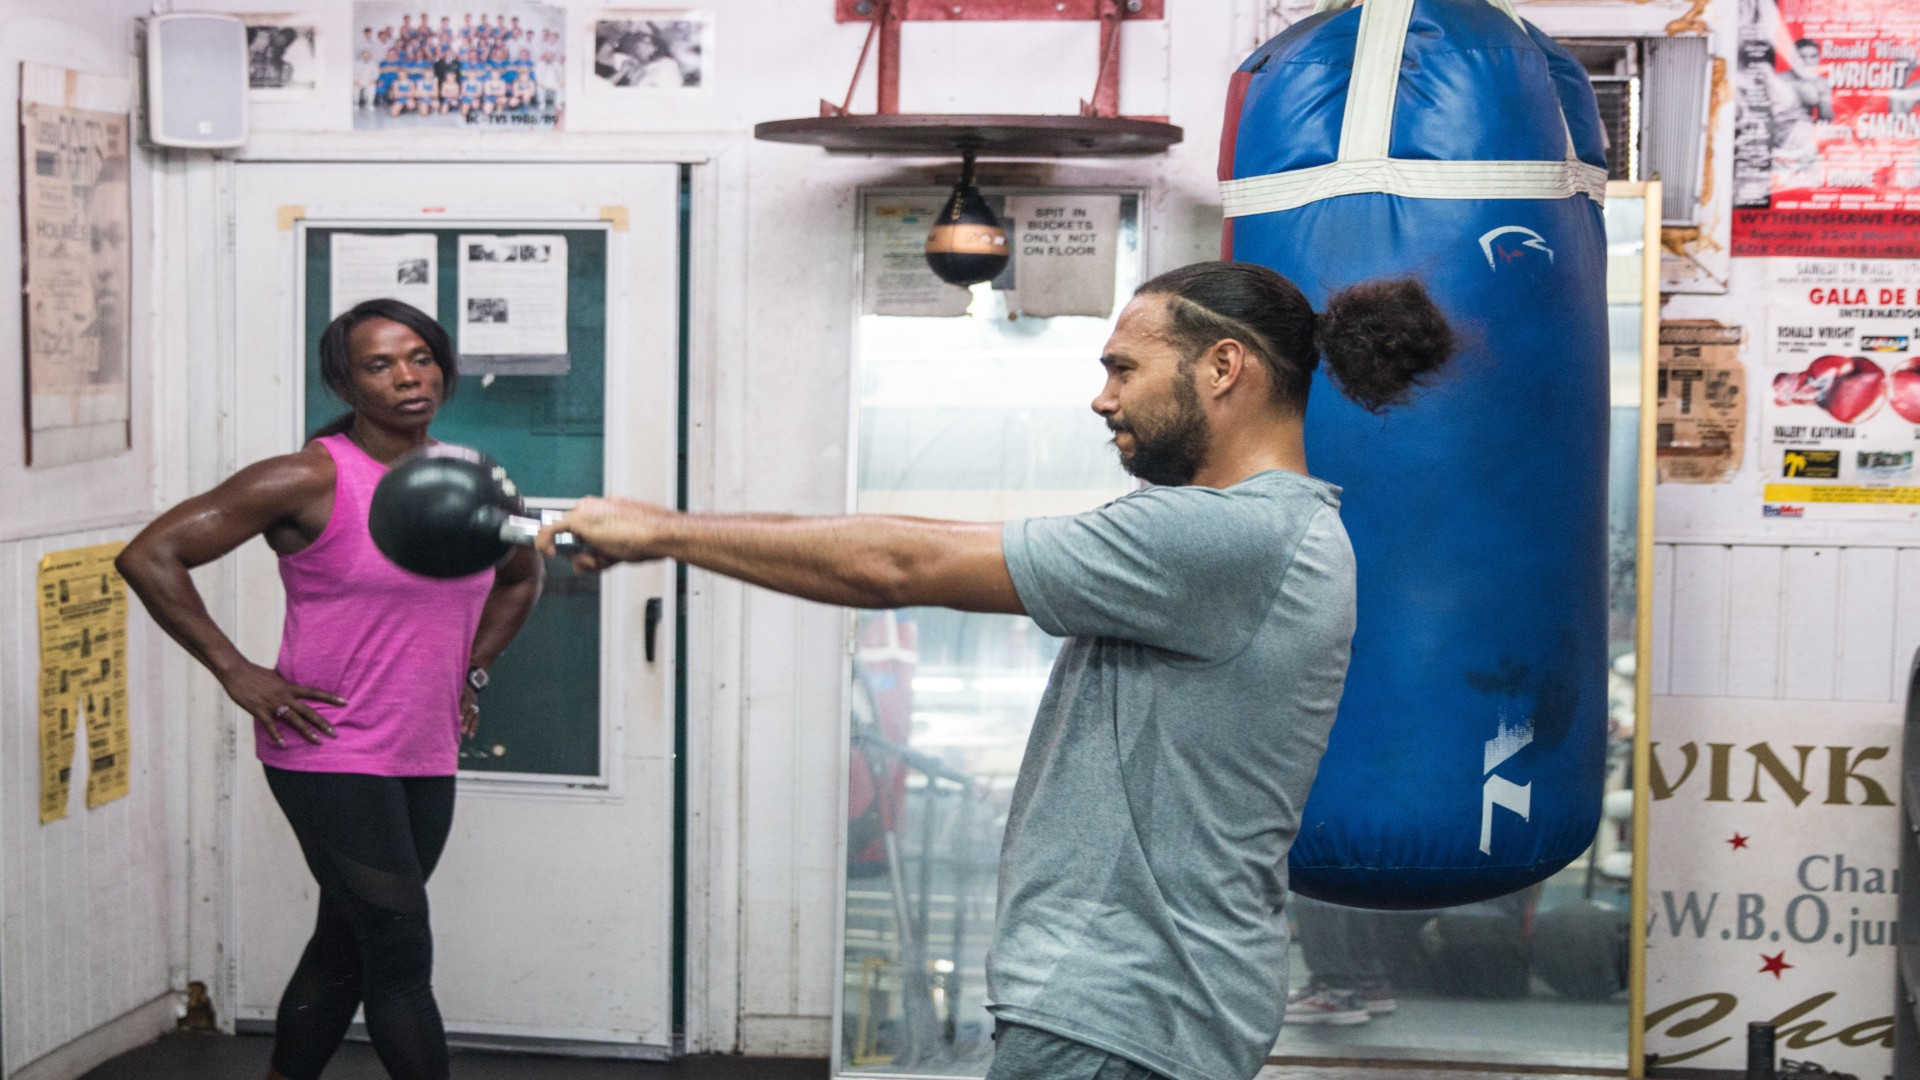 Keith Thurman 'is in the best shape' entering Manny Pacquiao fight says coach — and aunt — Kimberly Doehnert